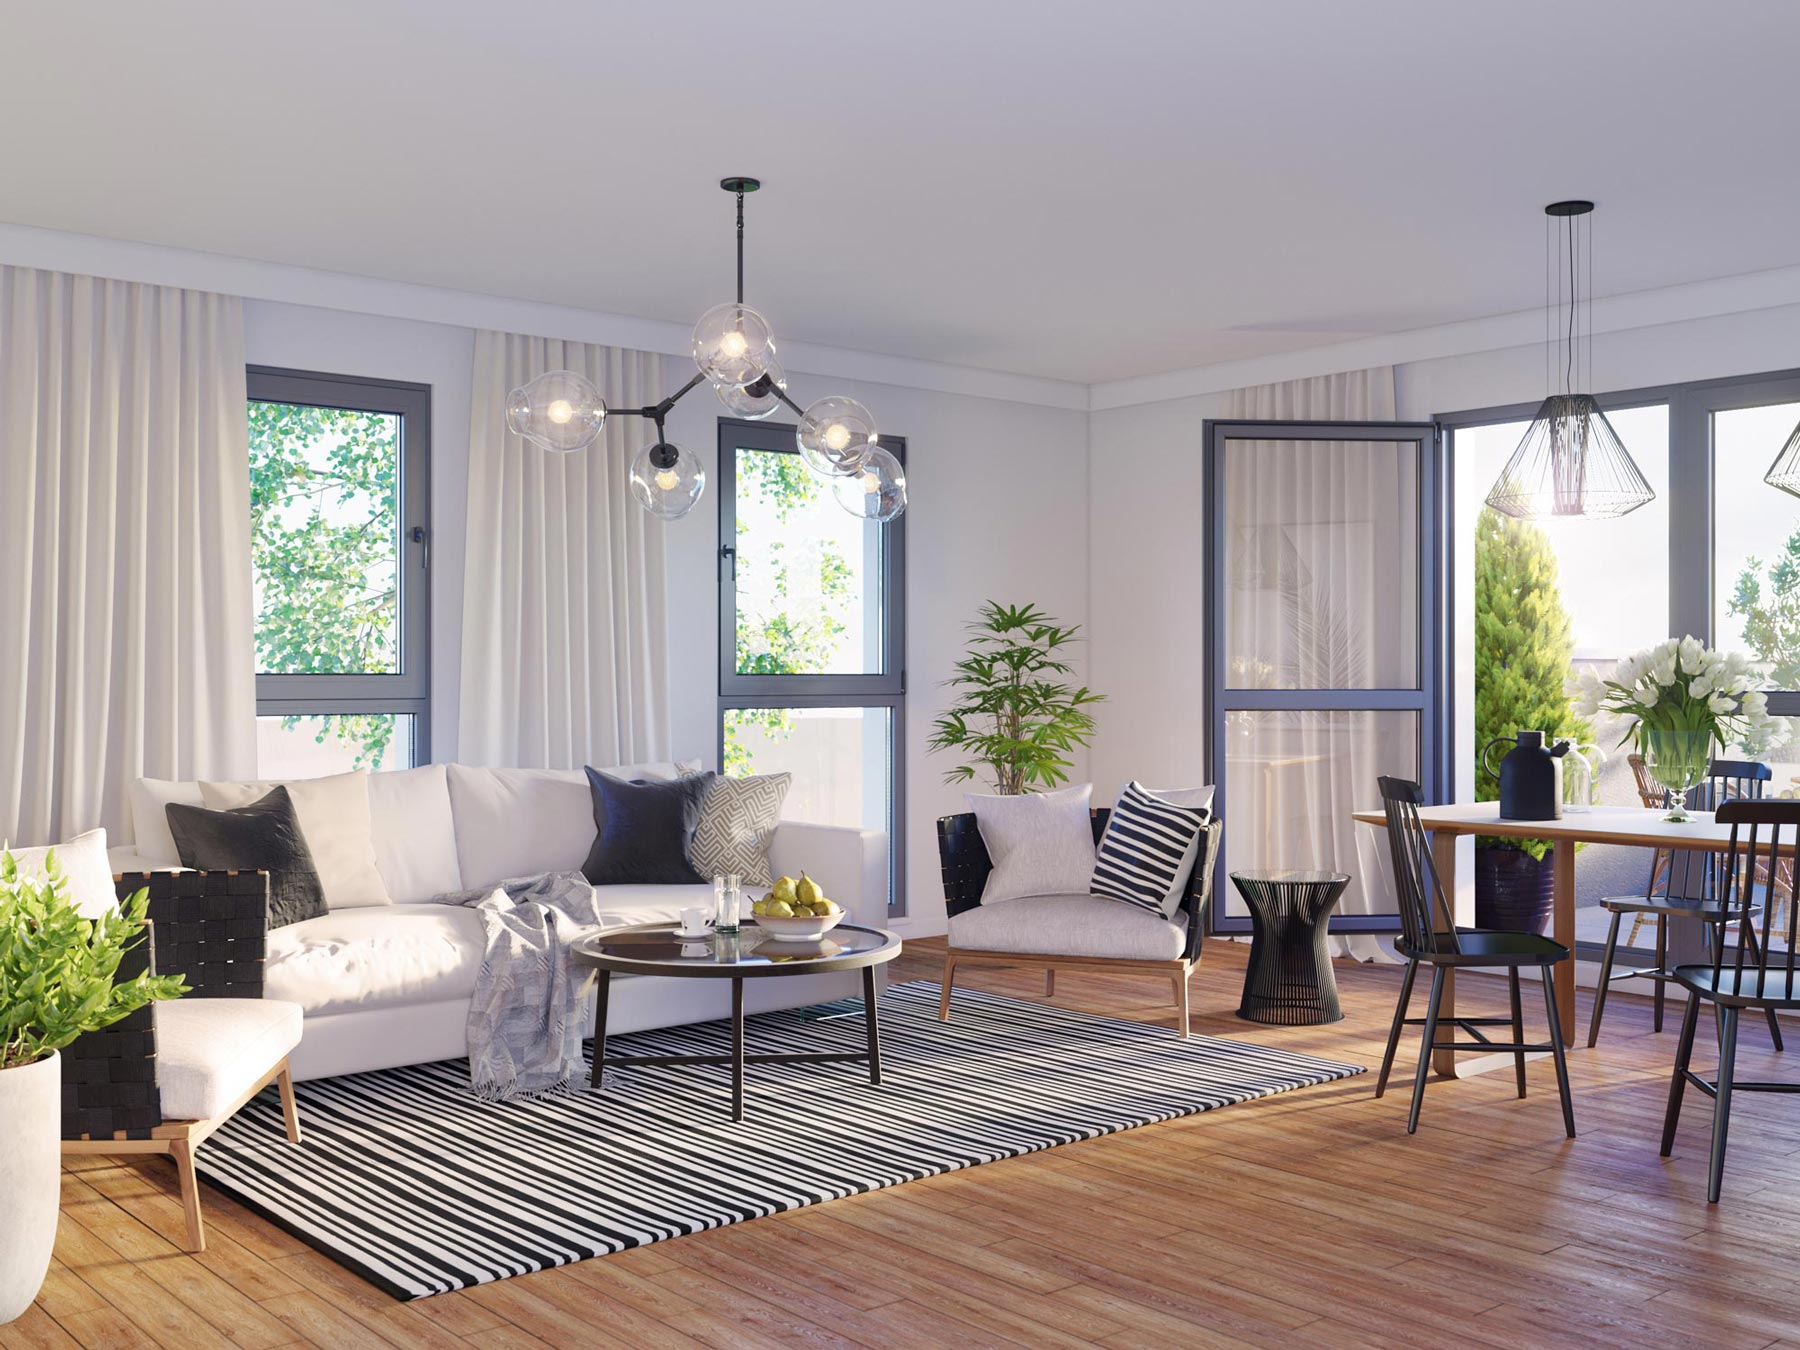 2502-livingroom-04-3d-visualization-by-kotiger-visuals.jpg